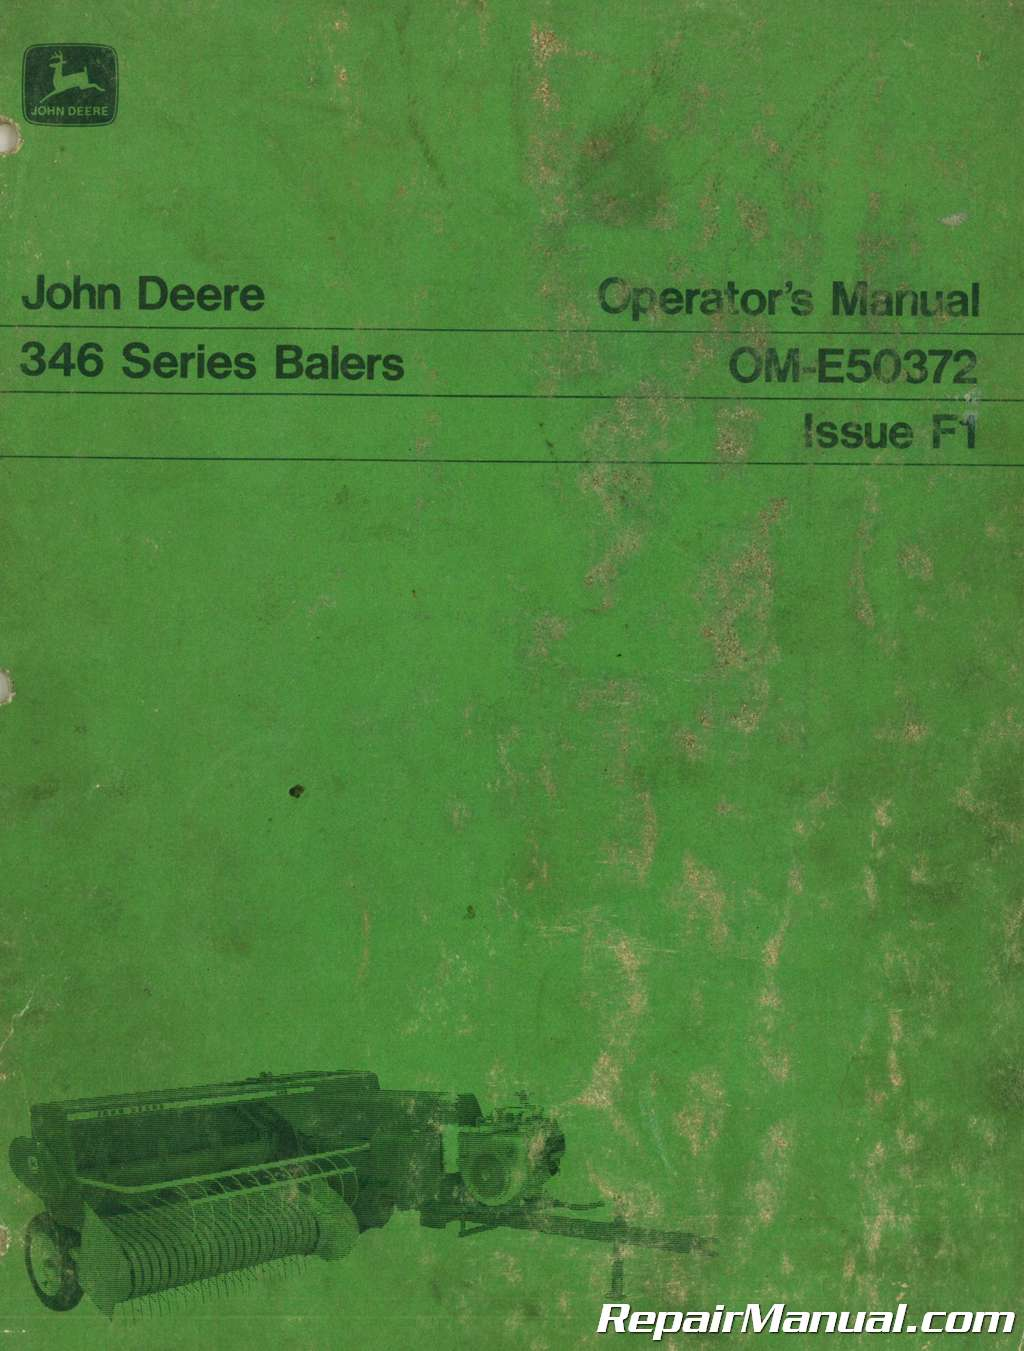 John Deere 346 Series Baler Operators Manual